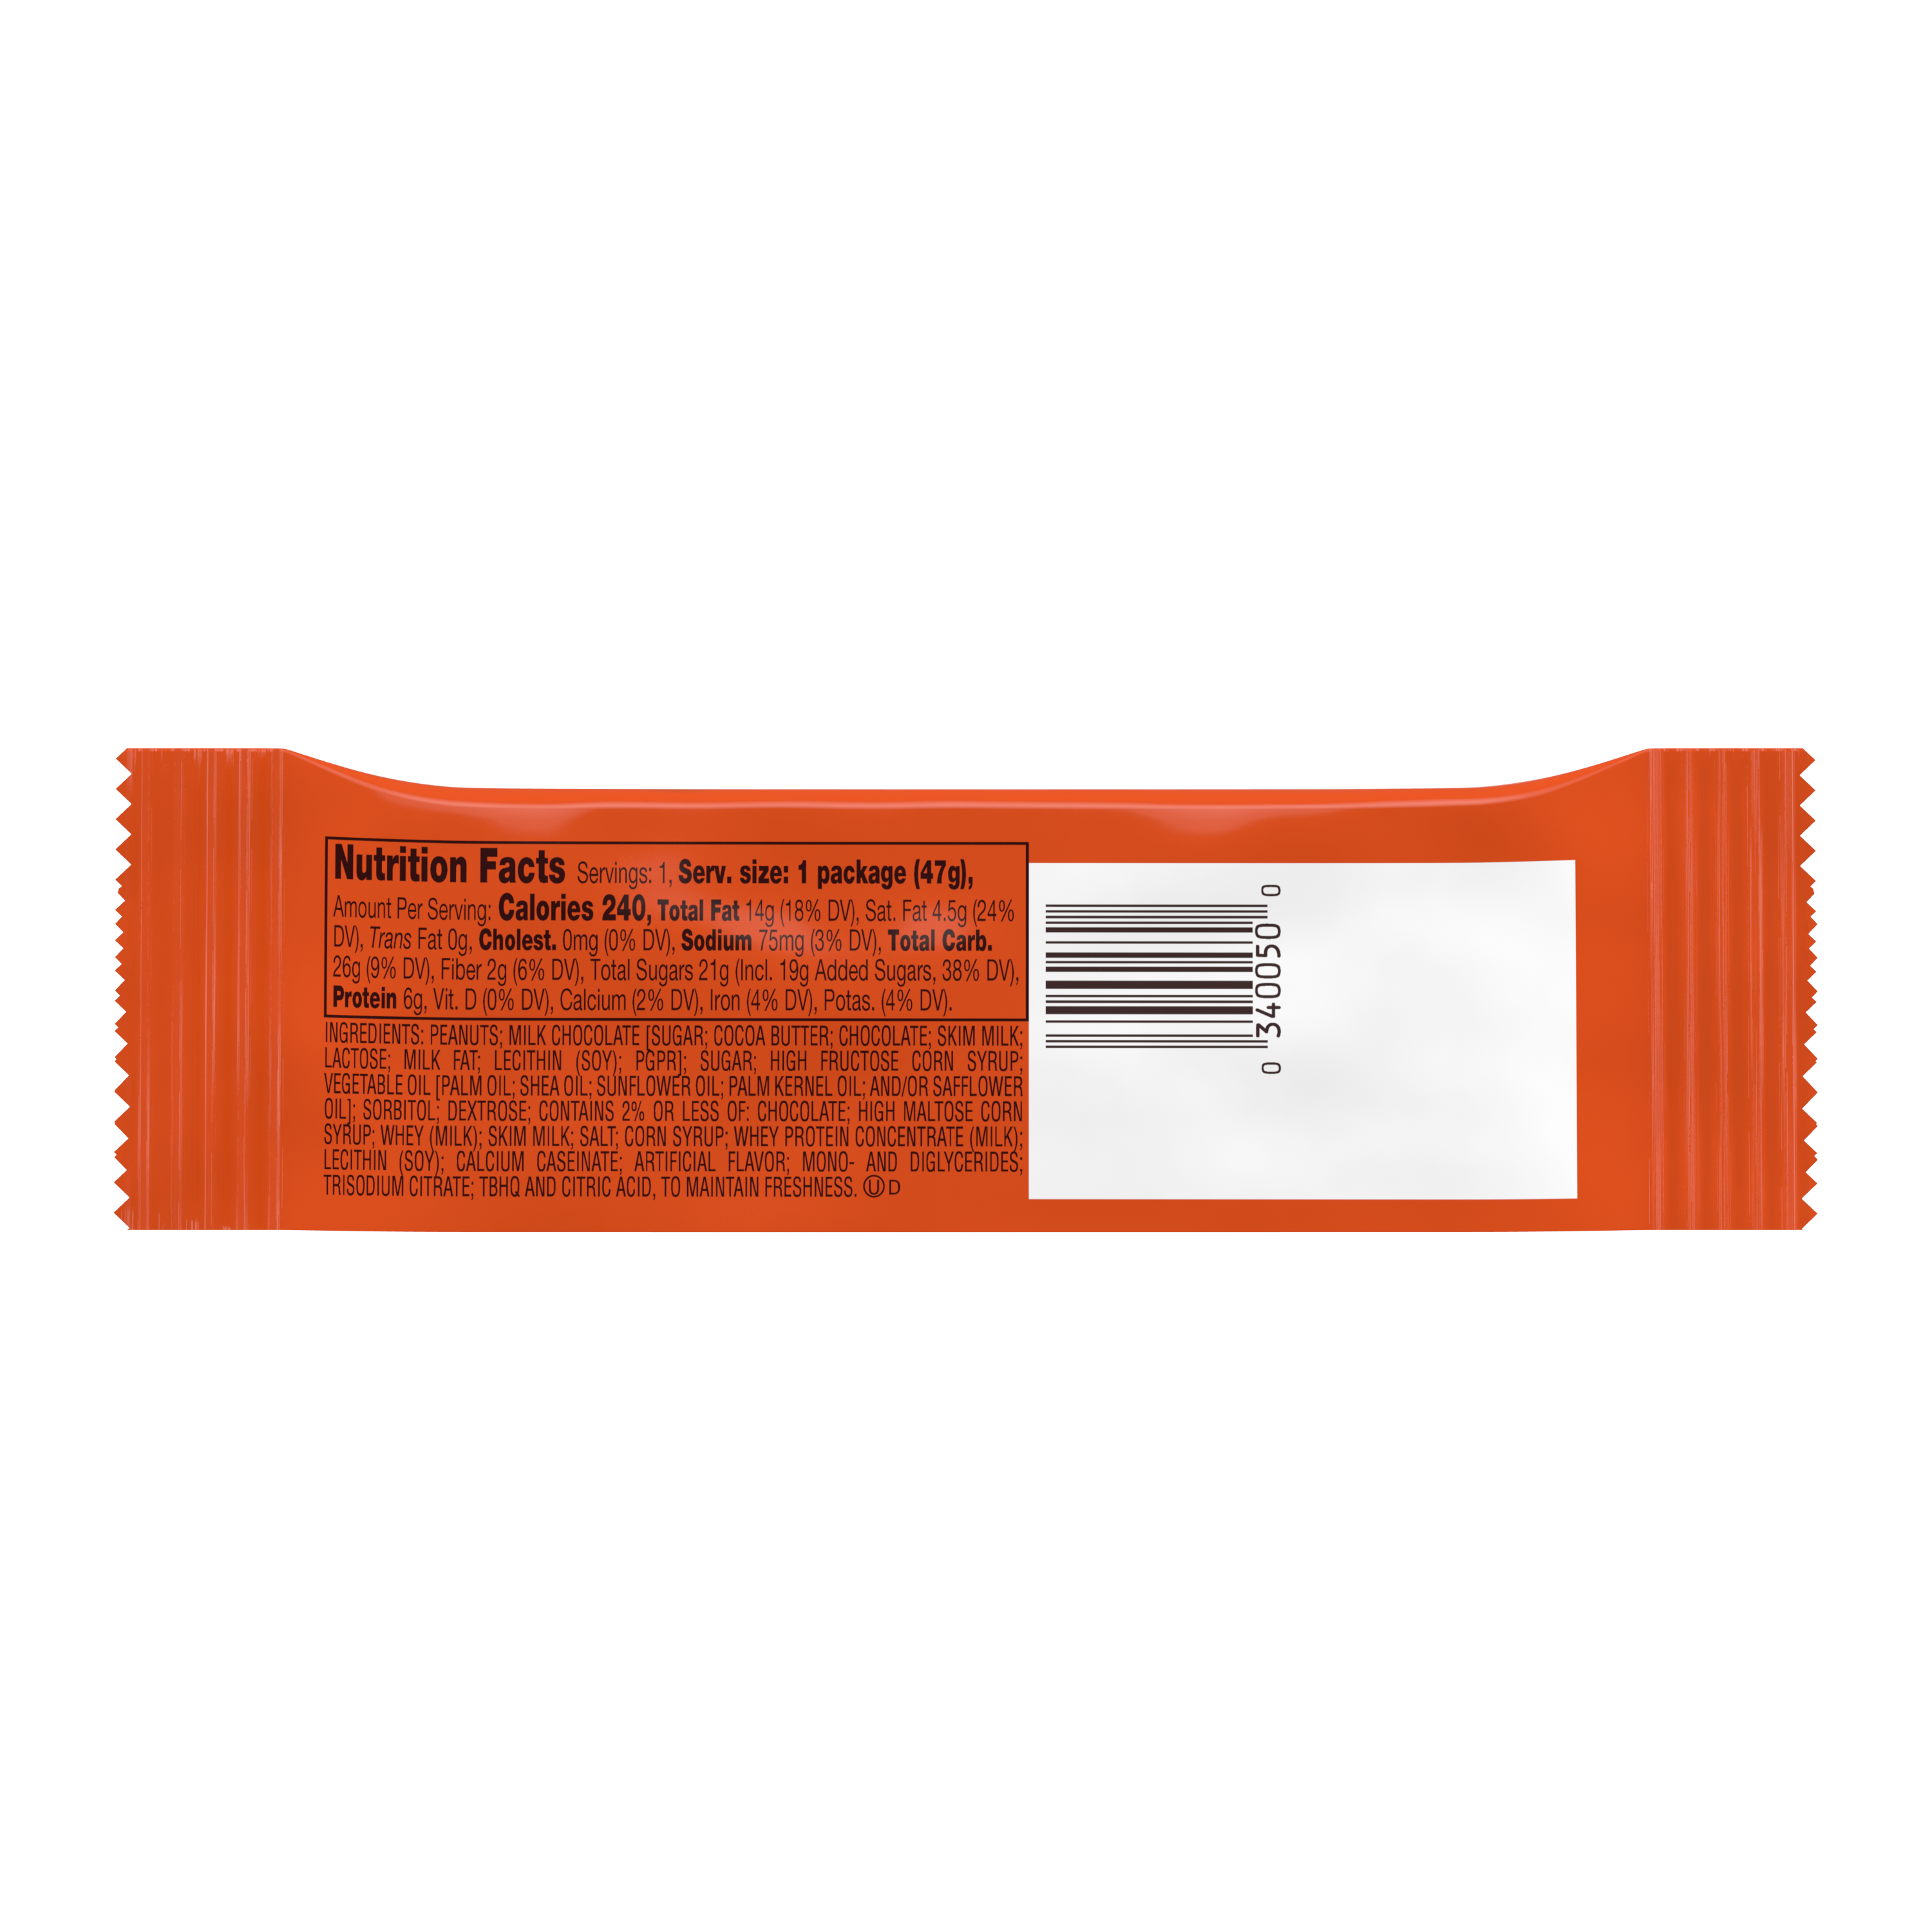 REESE'S NUTRAGEOUS Milk Chocolate Peanut Butter Candy Bar, 1.66 oz - Back of Package